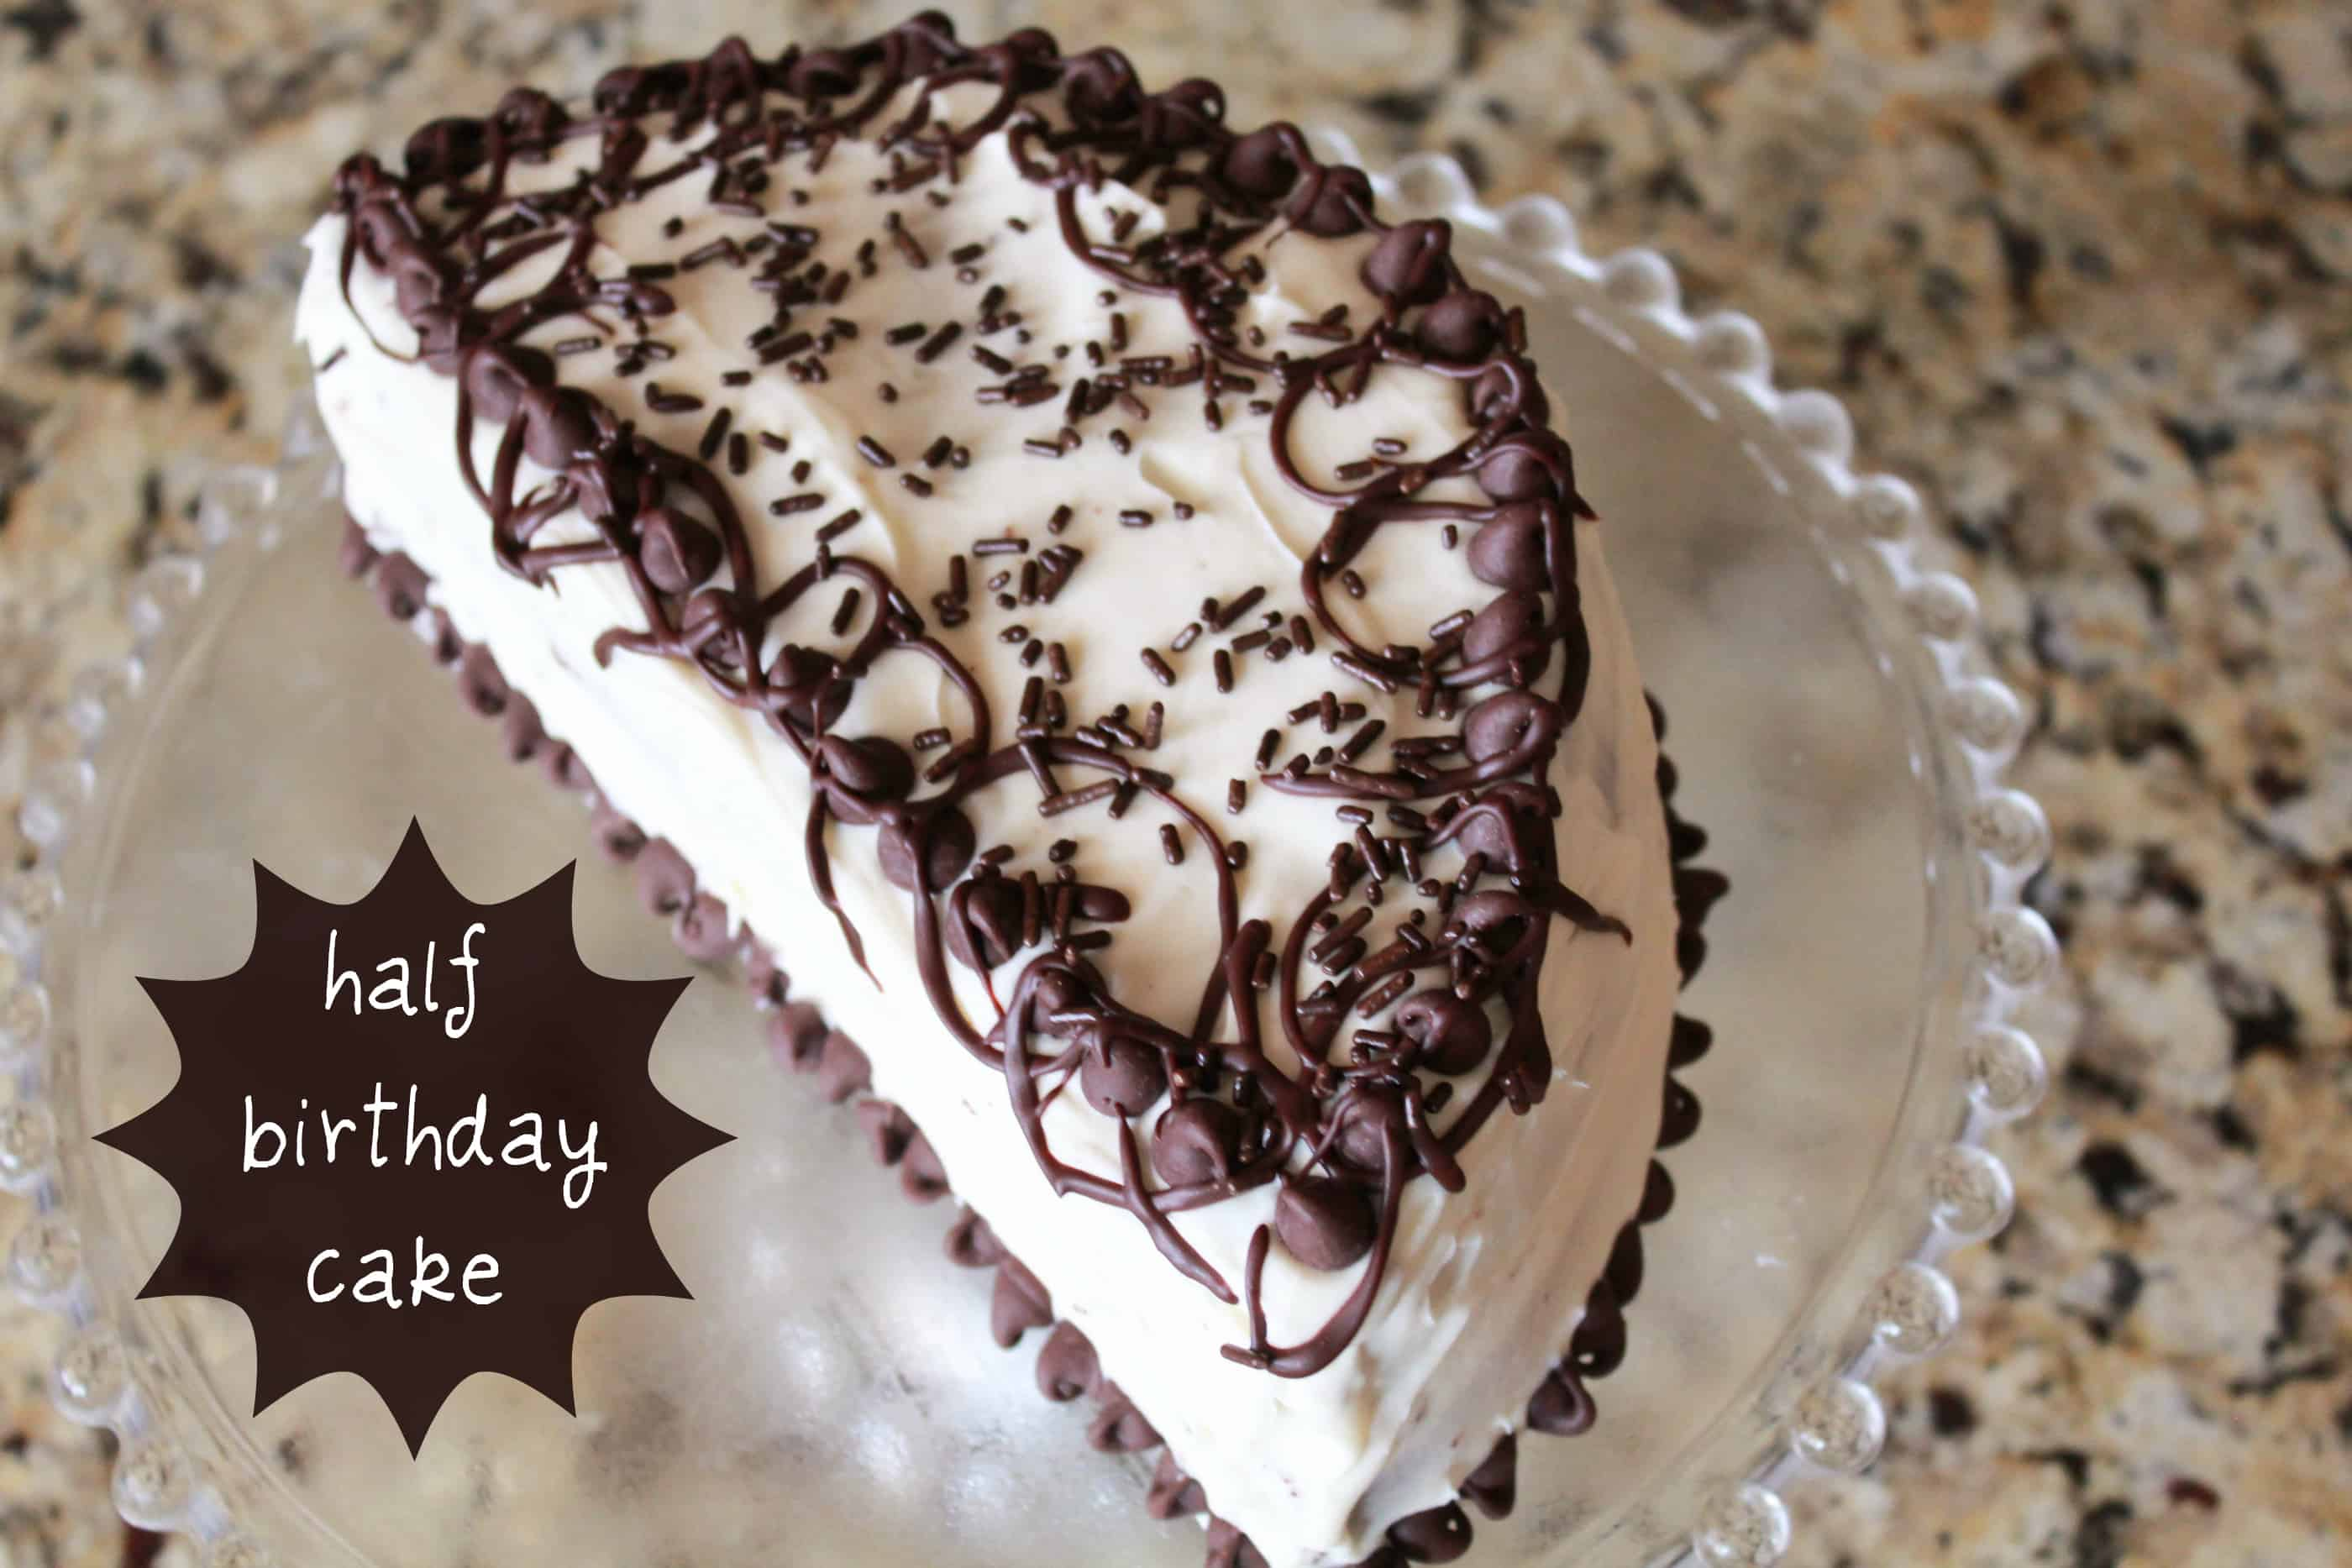 Half Birthday Black Forest Cake with Cream Frosting